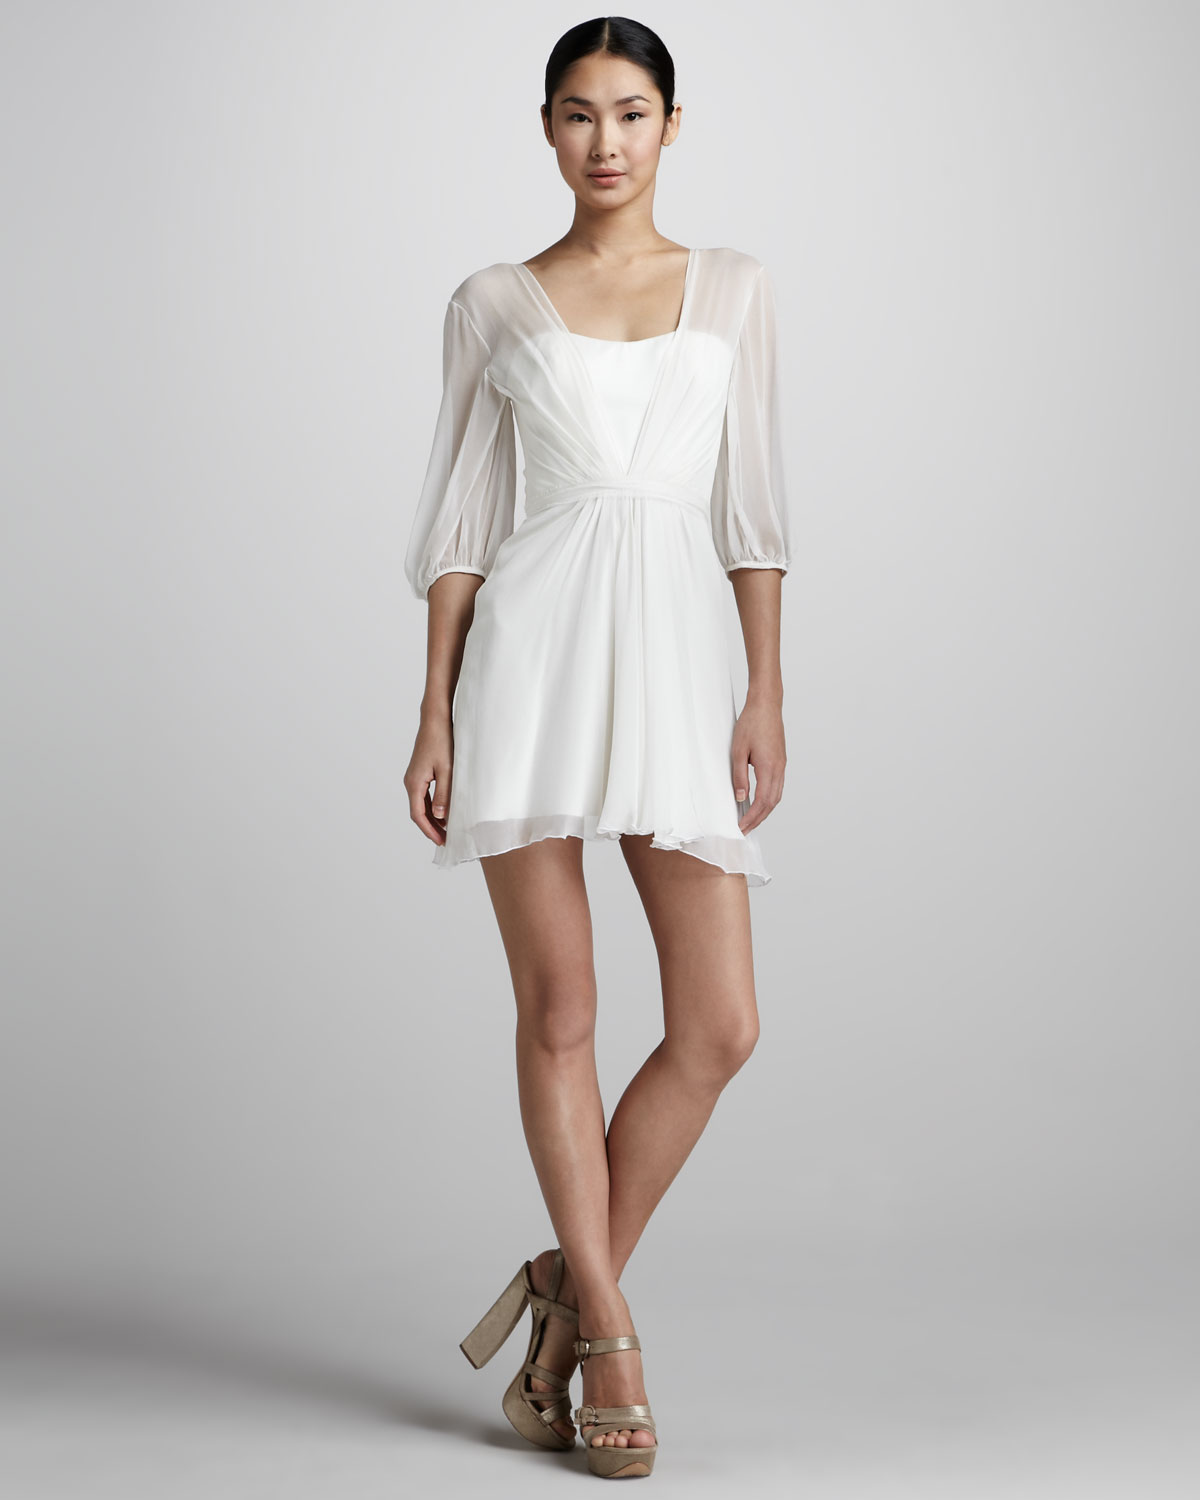 Lyst - Pamella Roland Sheer Chiffon Cocktail Dress in White